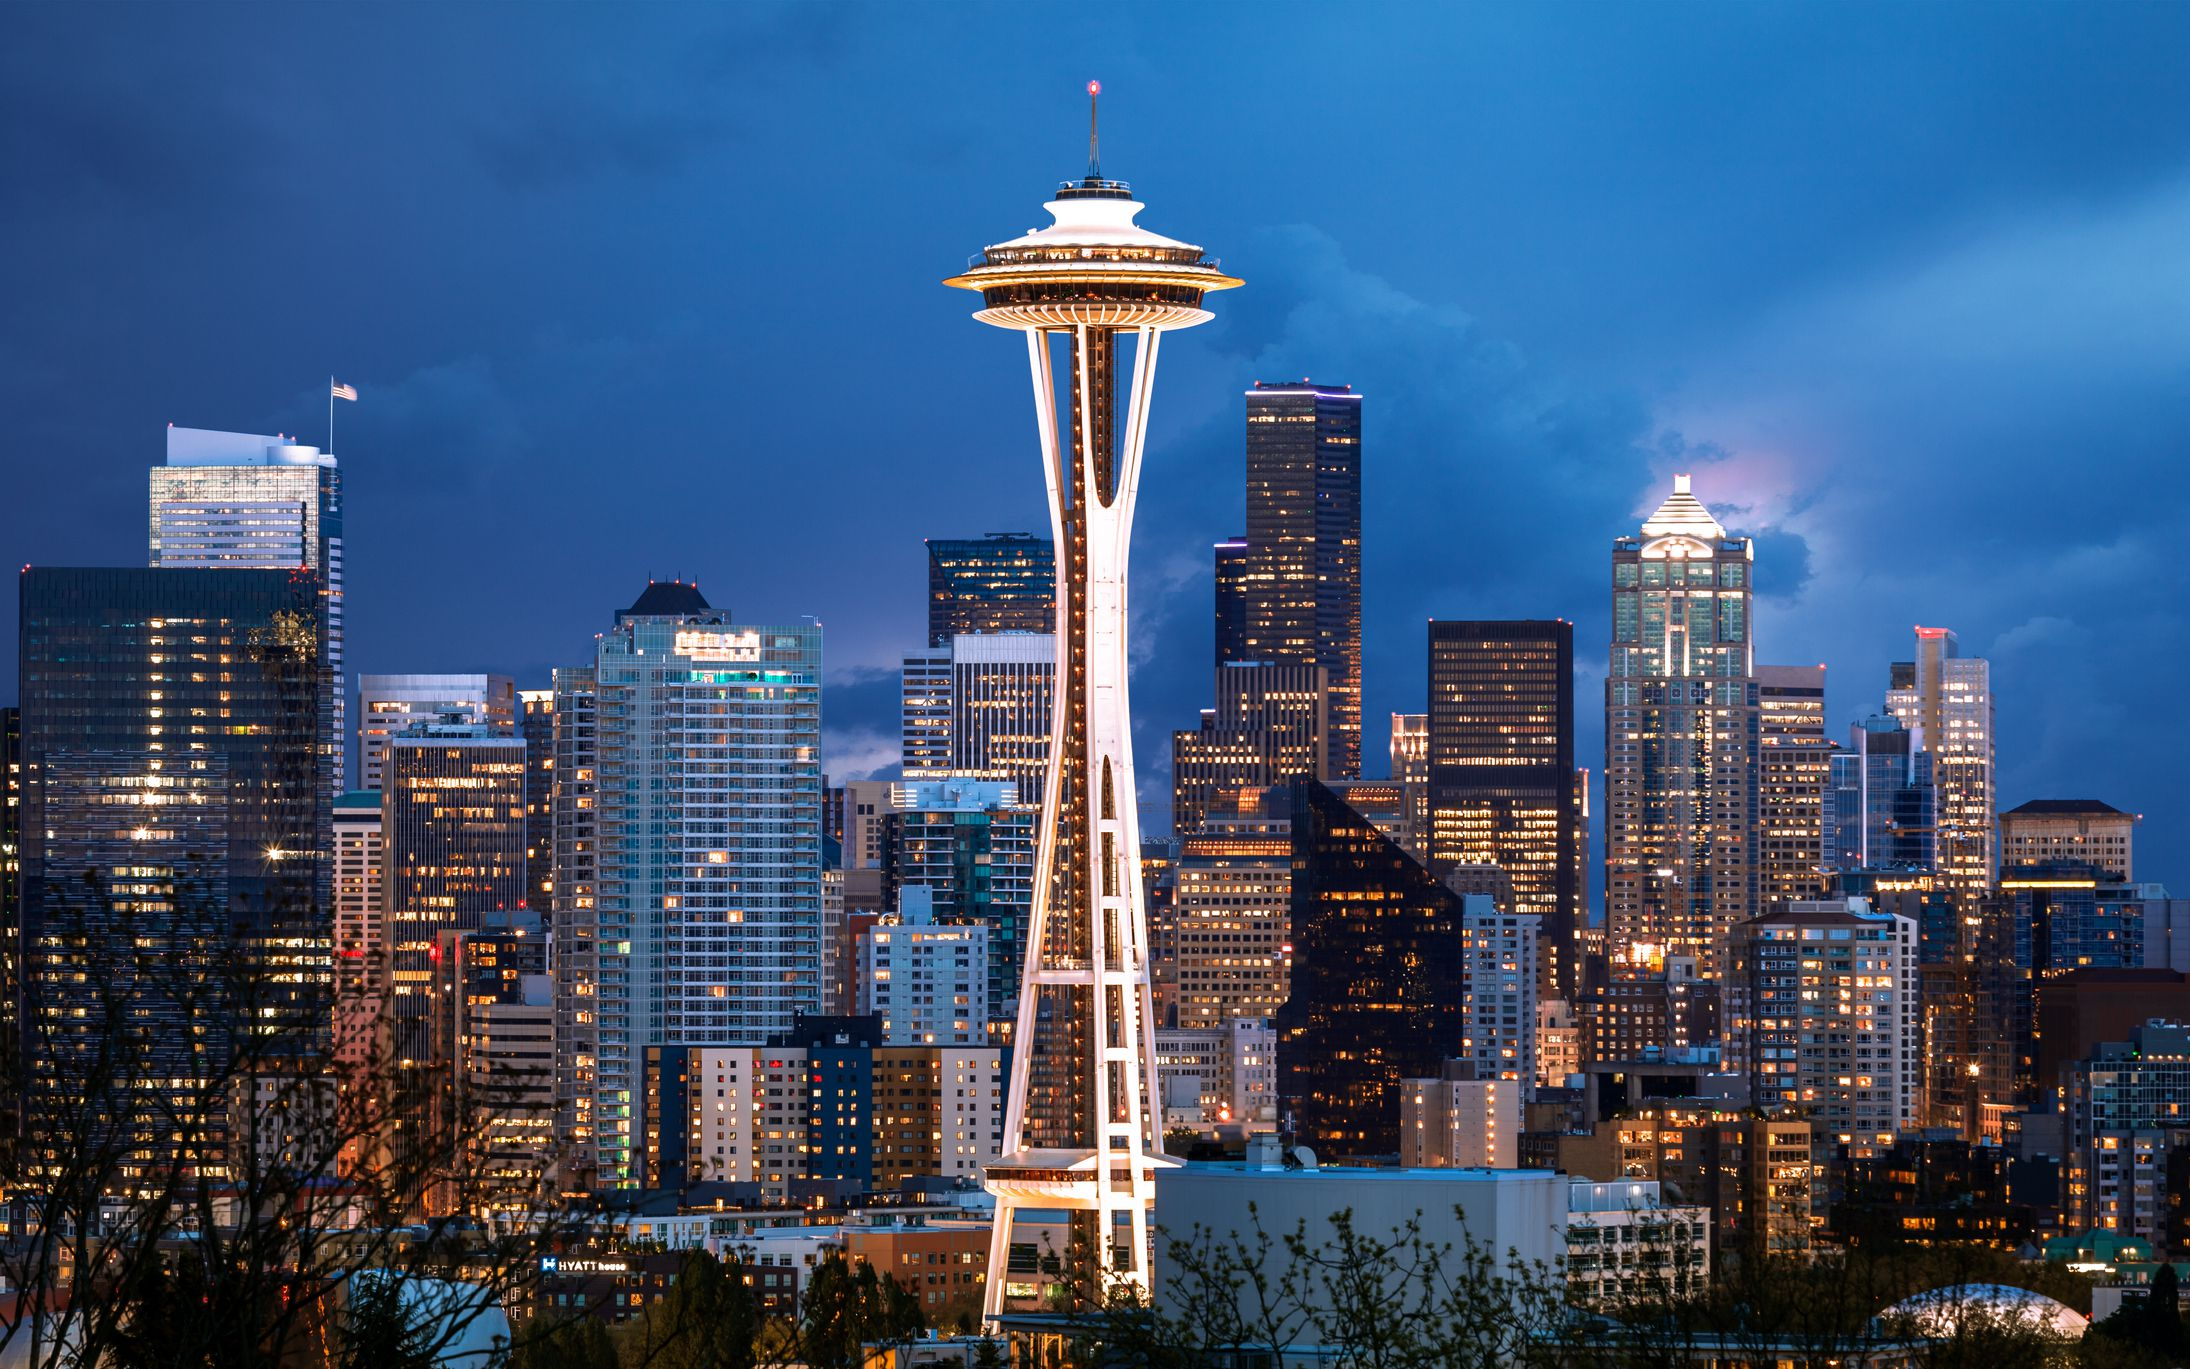 Seattle Space Needle Visitor Information